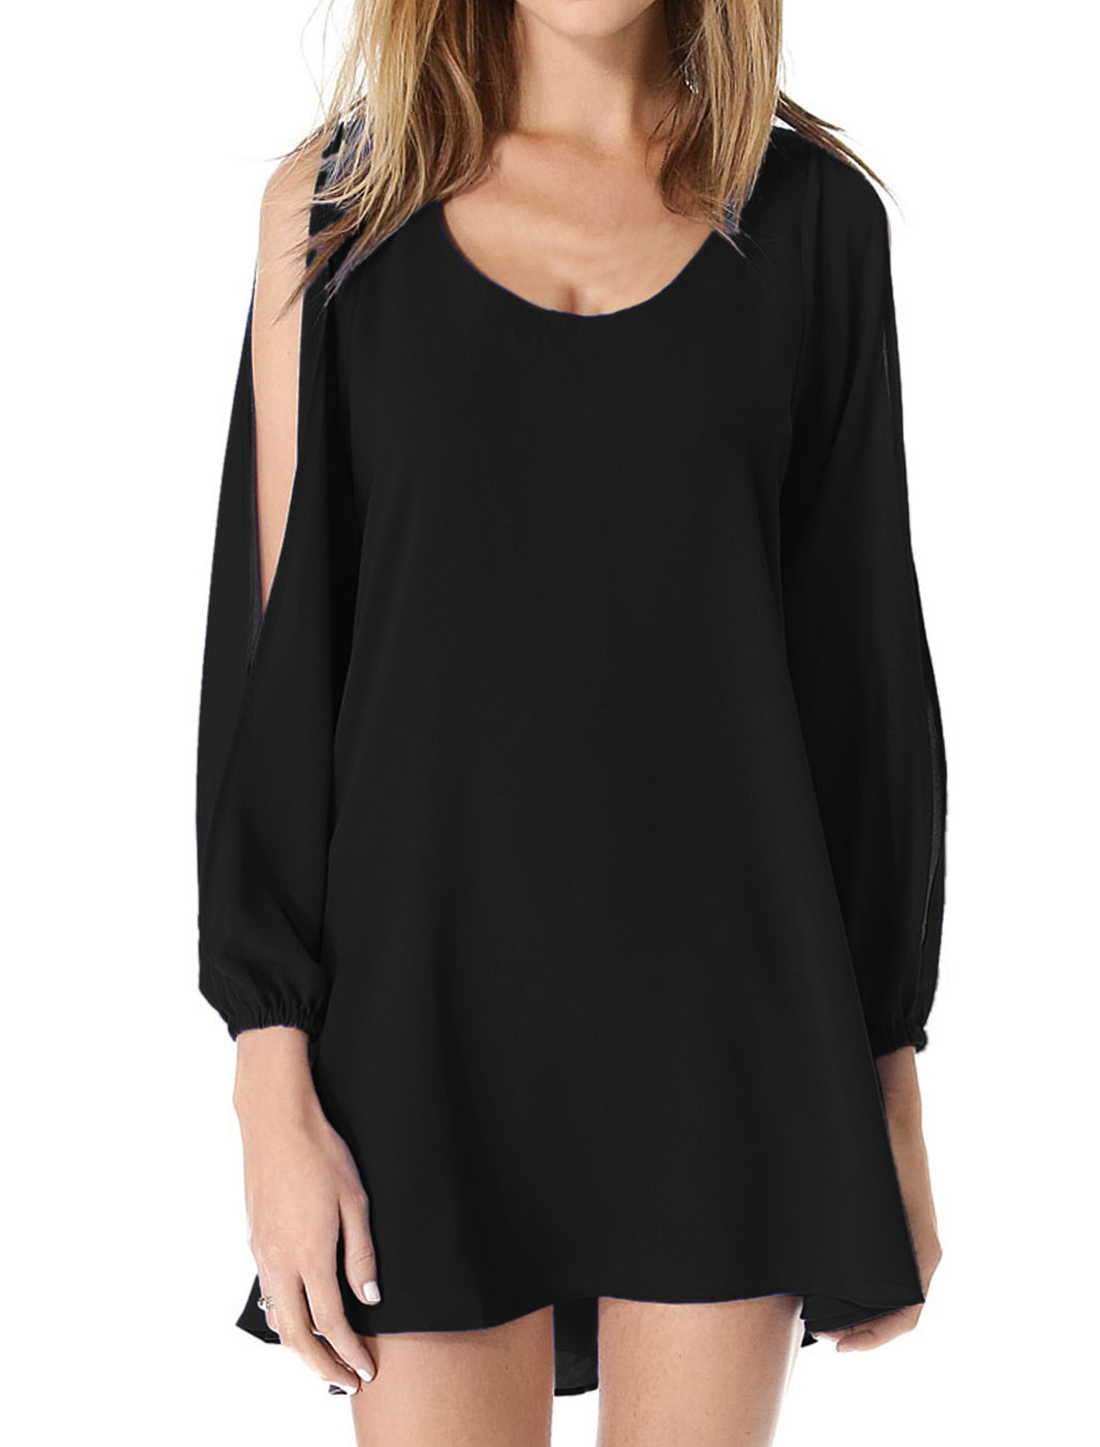 Lady Pullover Round Neck Fashionable Leisure Chiffon Shift Dress Black M